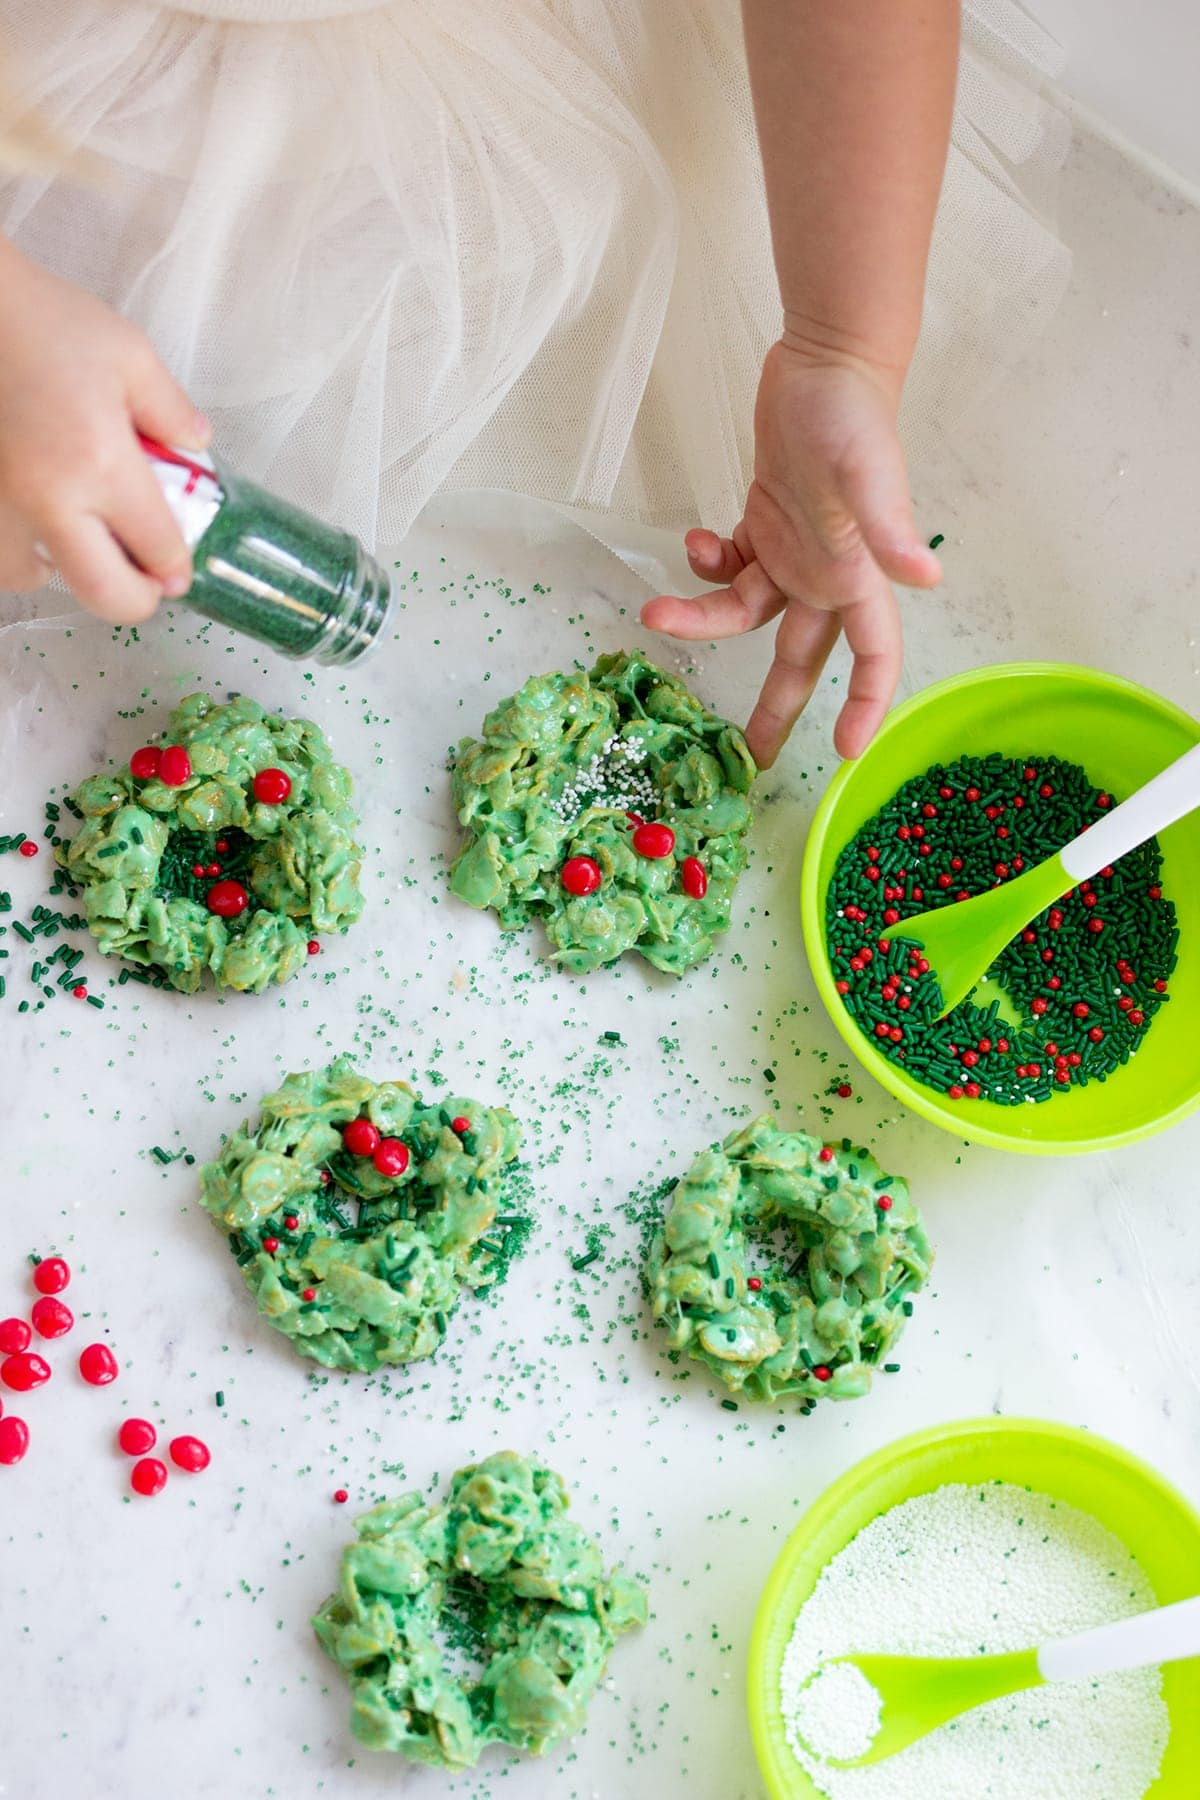 Classic Christmas Wreath Cookies, also known as holly wreath cookies, made with corn flakes and cinnamon candies are perfect for making with kids and leaving out for Santa on Christmas Eve.